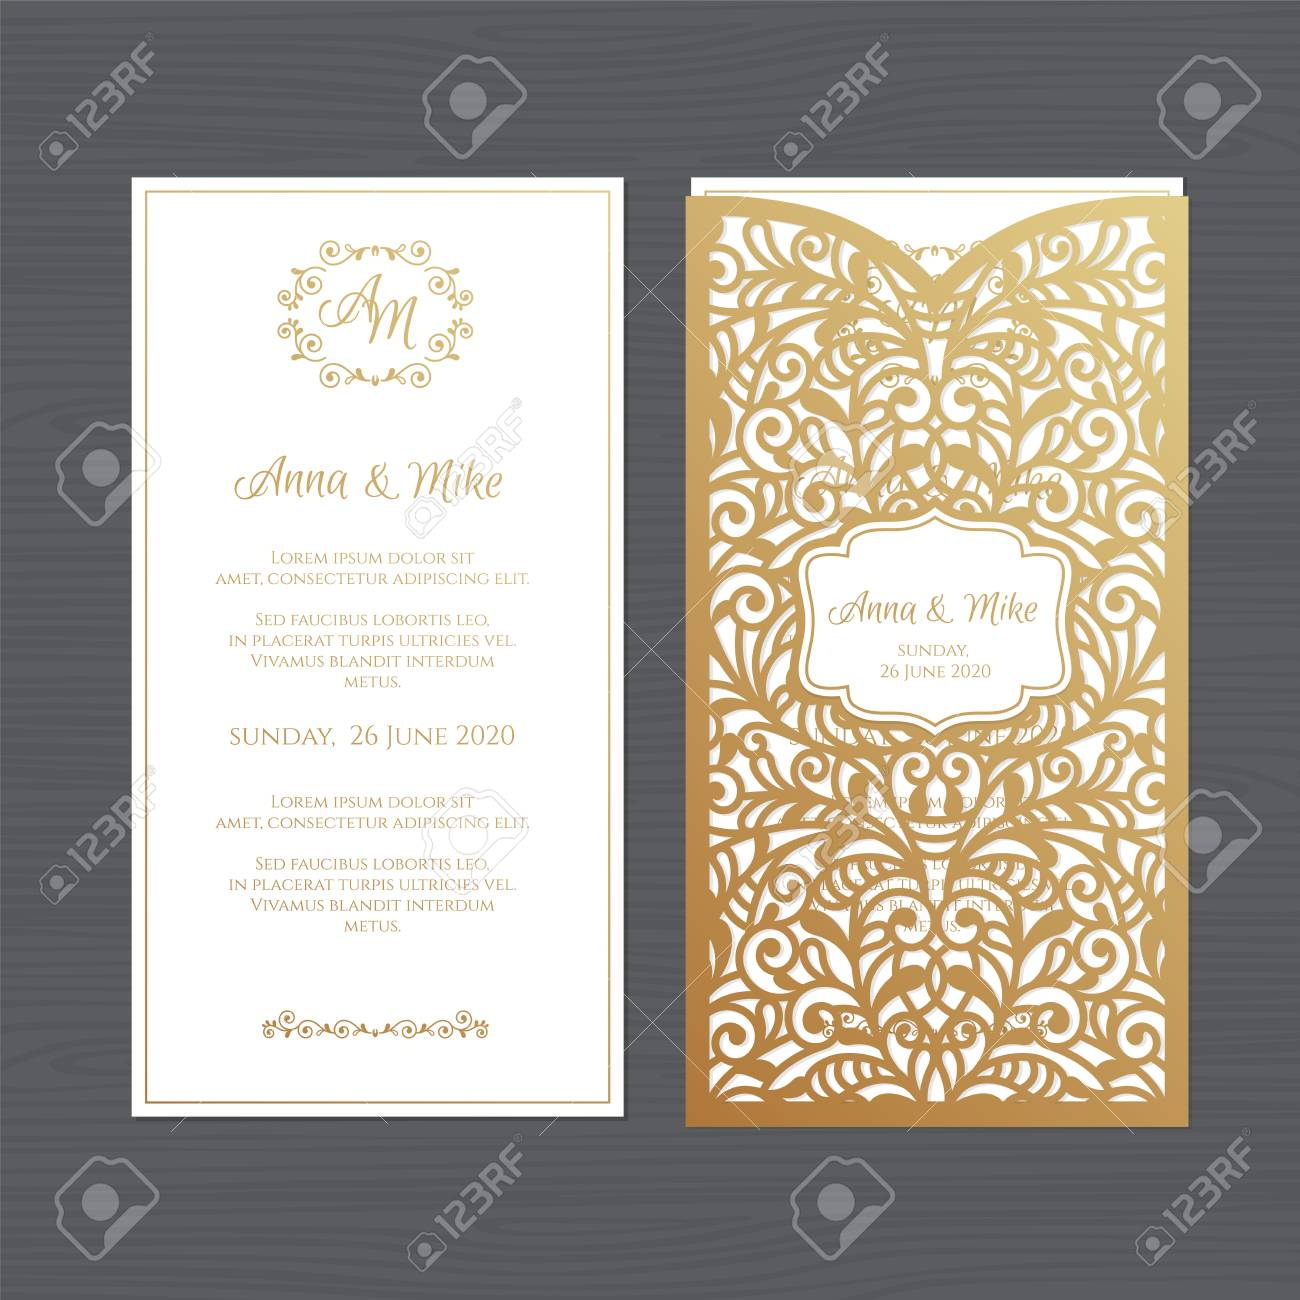 Luxury wedding invitation or greeting card with vintage floral ornament. Paper lace envelope template. Wedding invitation envelope mock-up for laser cutting. Vector illustration. - 106033680